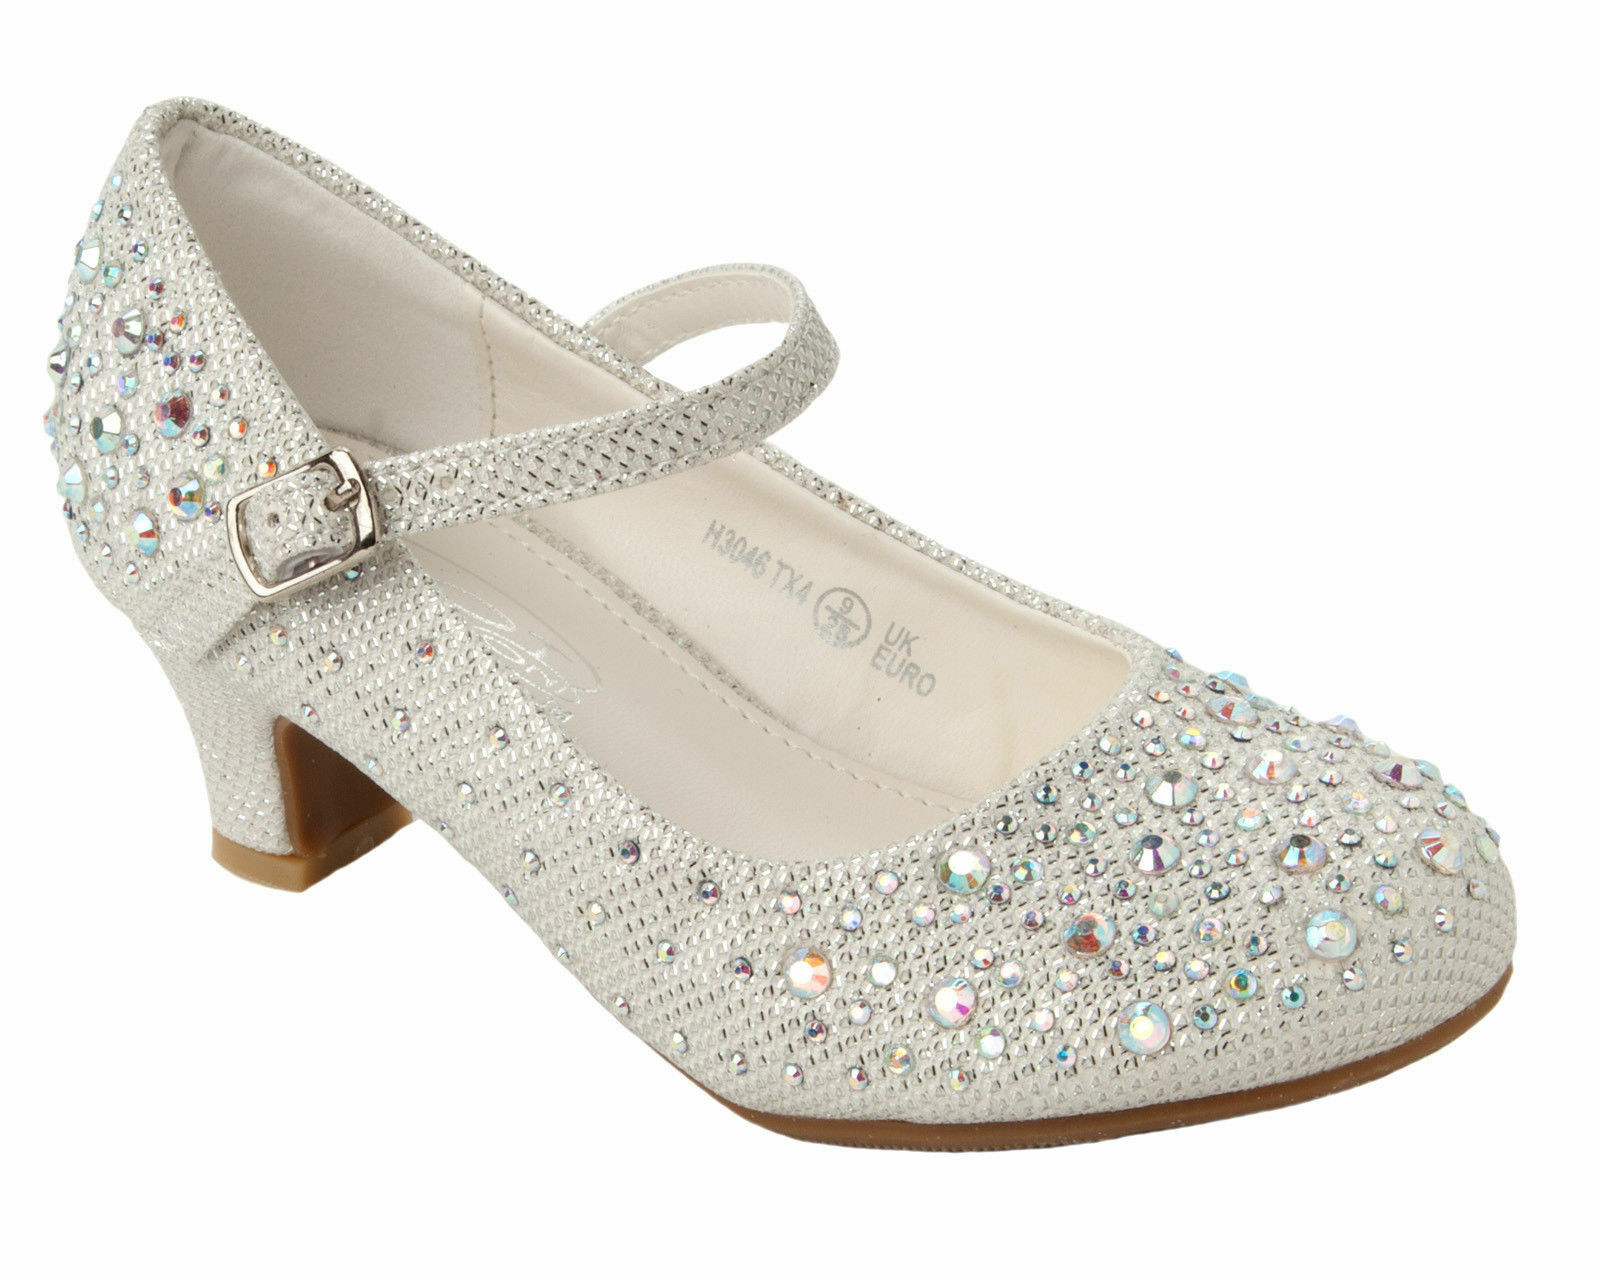 Rainbow Club's cute flower girl and bridesmaid shoes features sparkly pumps, delicate flower blossoms, lace bar shoes and traditional satin shoes. Did you know our 'Abigail' ballet pumps were the choice of the Duke and Duchess Royal Wedding in ?